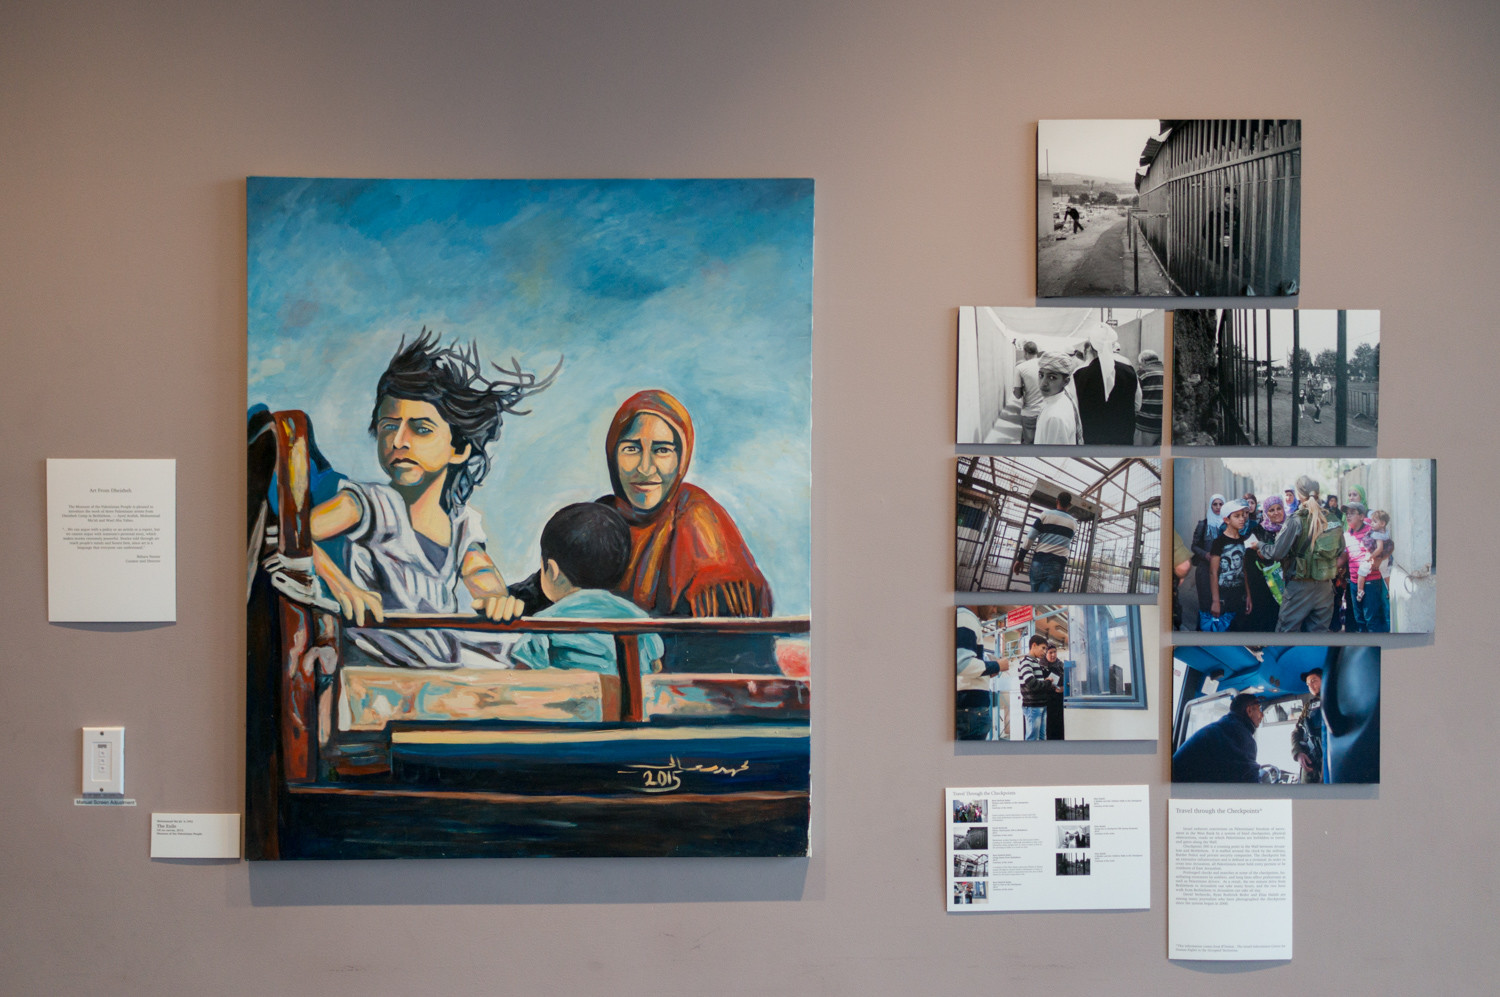 The multimedia exhibition 'Bethlehem Beyond the Wall' brings together photographs, paintings and films that depict life in and around the Palestinian city of Bethlehem. The Museum of the Palestinian People curated the exhibition. It is on display until Feb. 27.